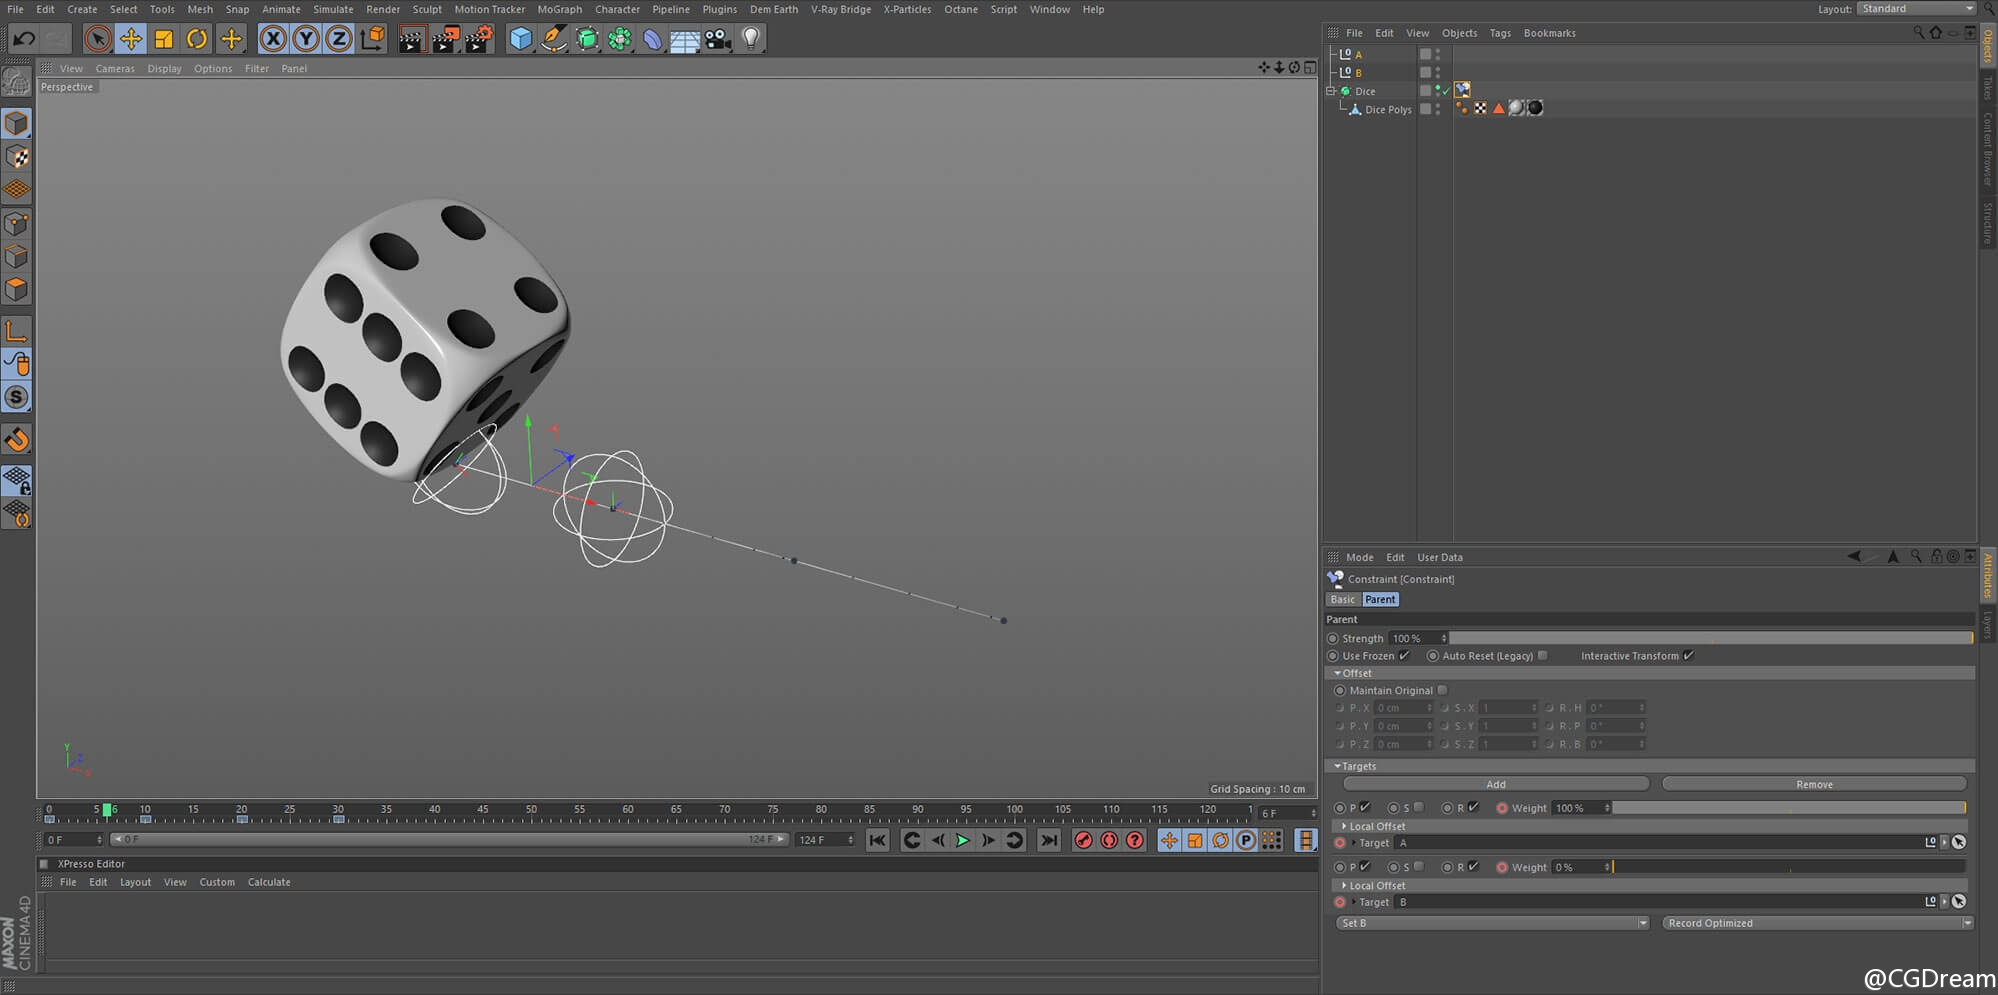 Cinema 4D骨骼绑定视频教程 - Learn Cinema 4D Rigging In One Day